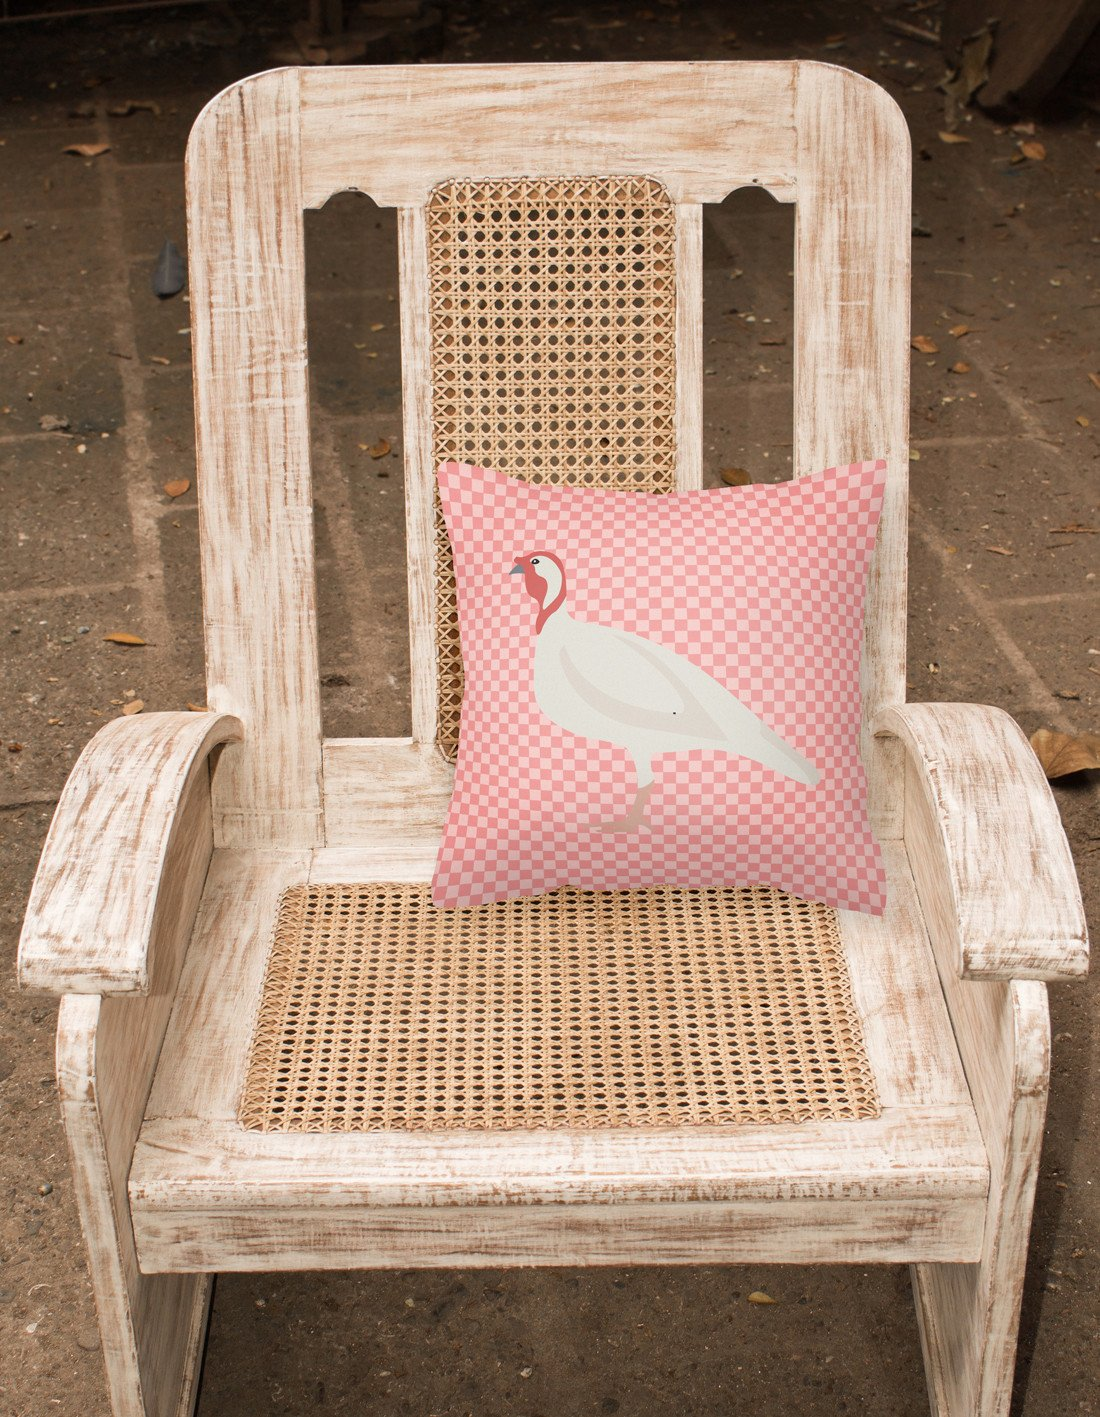 Beltsville Small White Turkey Hen Pink Check Fabric Decorative Pillow BB7989PW1818 by Caroline's Treasures